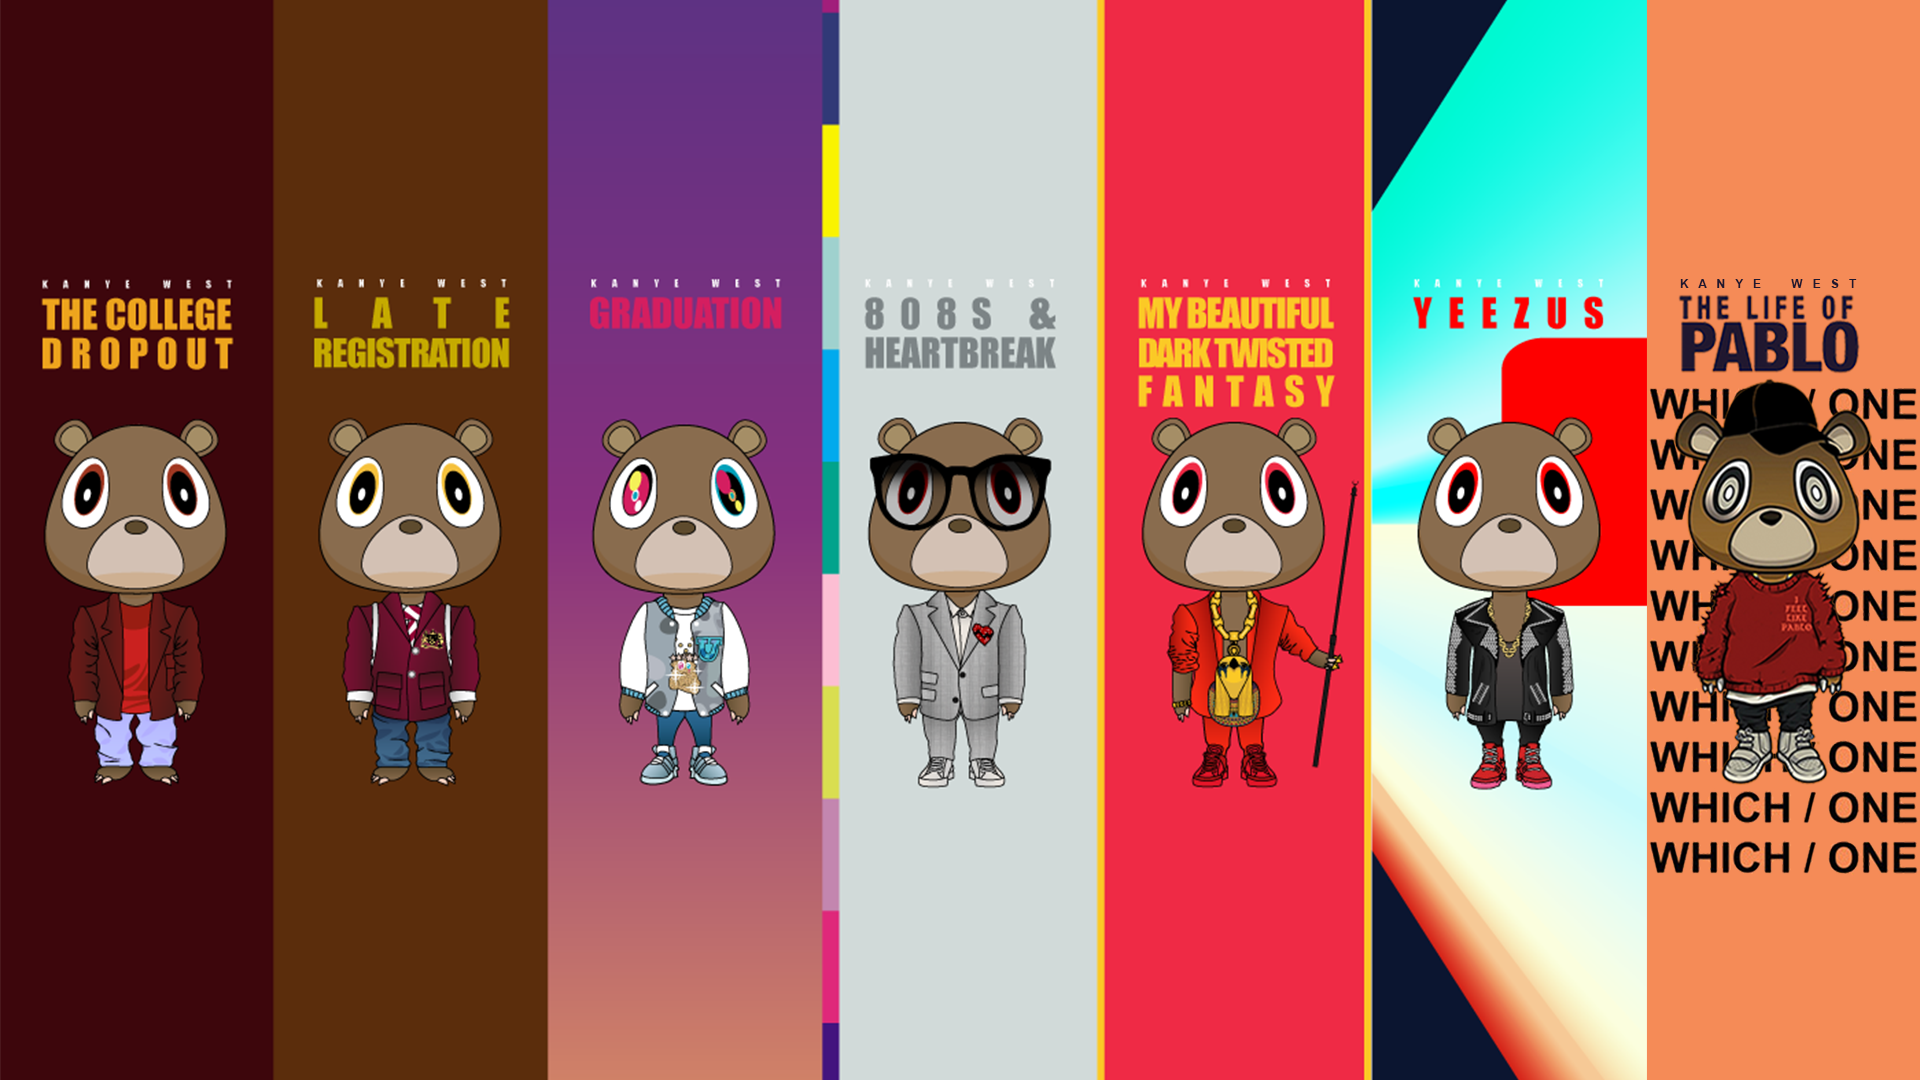 Pin by Miguel Villela on FML Custom posters, Kanye west